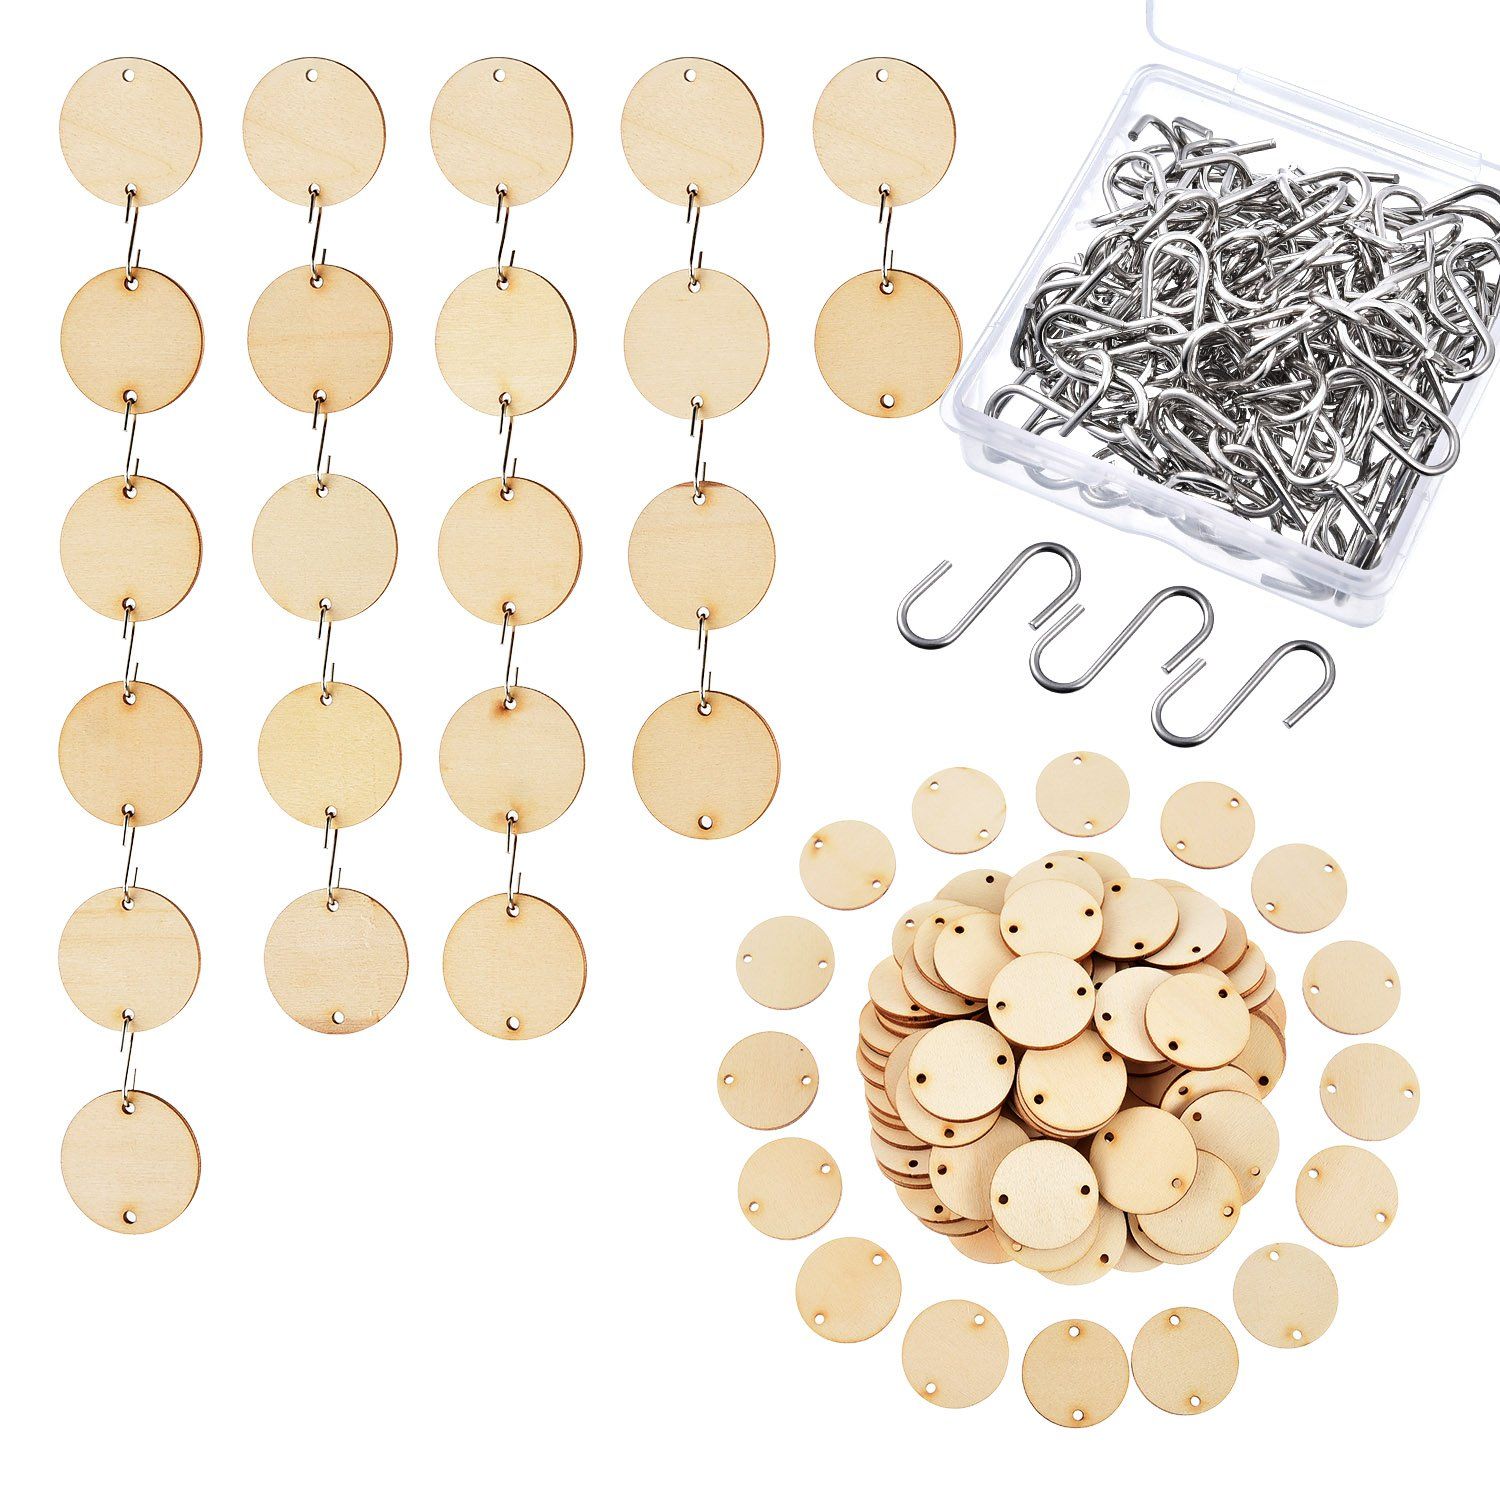 Hicarer 100 Pieces Wooden Tags with 2 Holes Round Wood Discs and 100 Pieces S Hooks Connectors for Birthday Boards, Chore Boards and Crafts